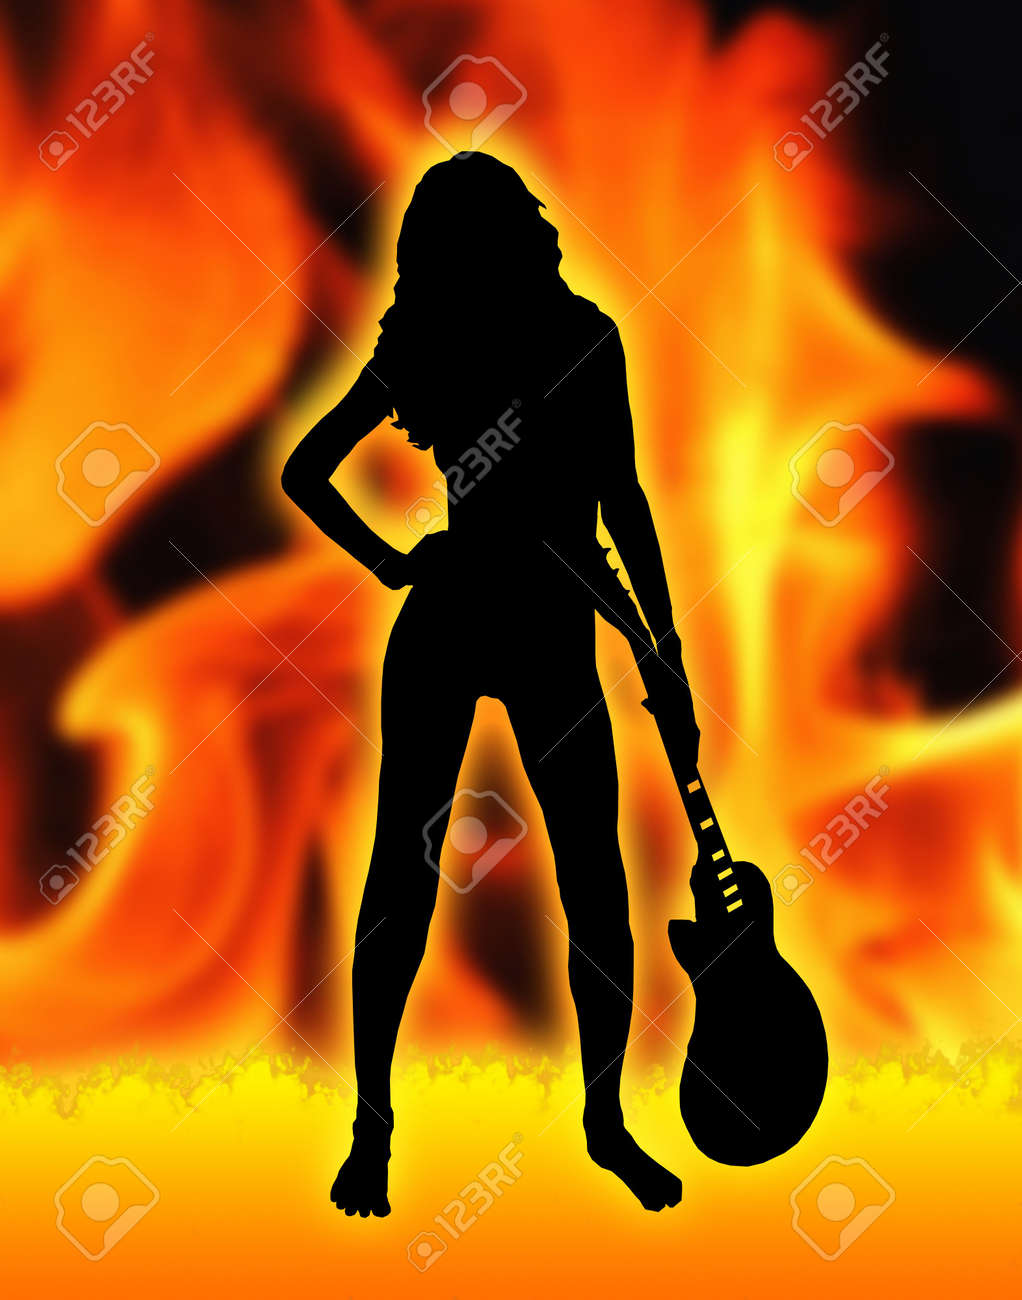 Woman Rock is an artist image of a woman with guitar Stock Photo - 833810